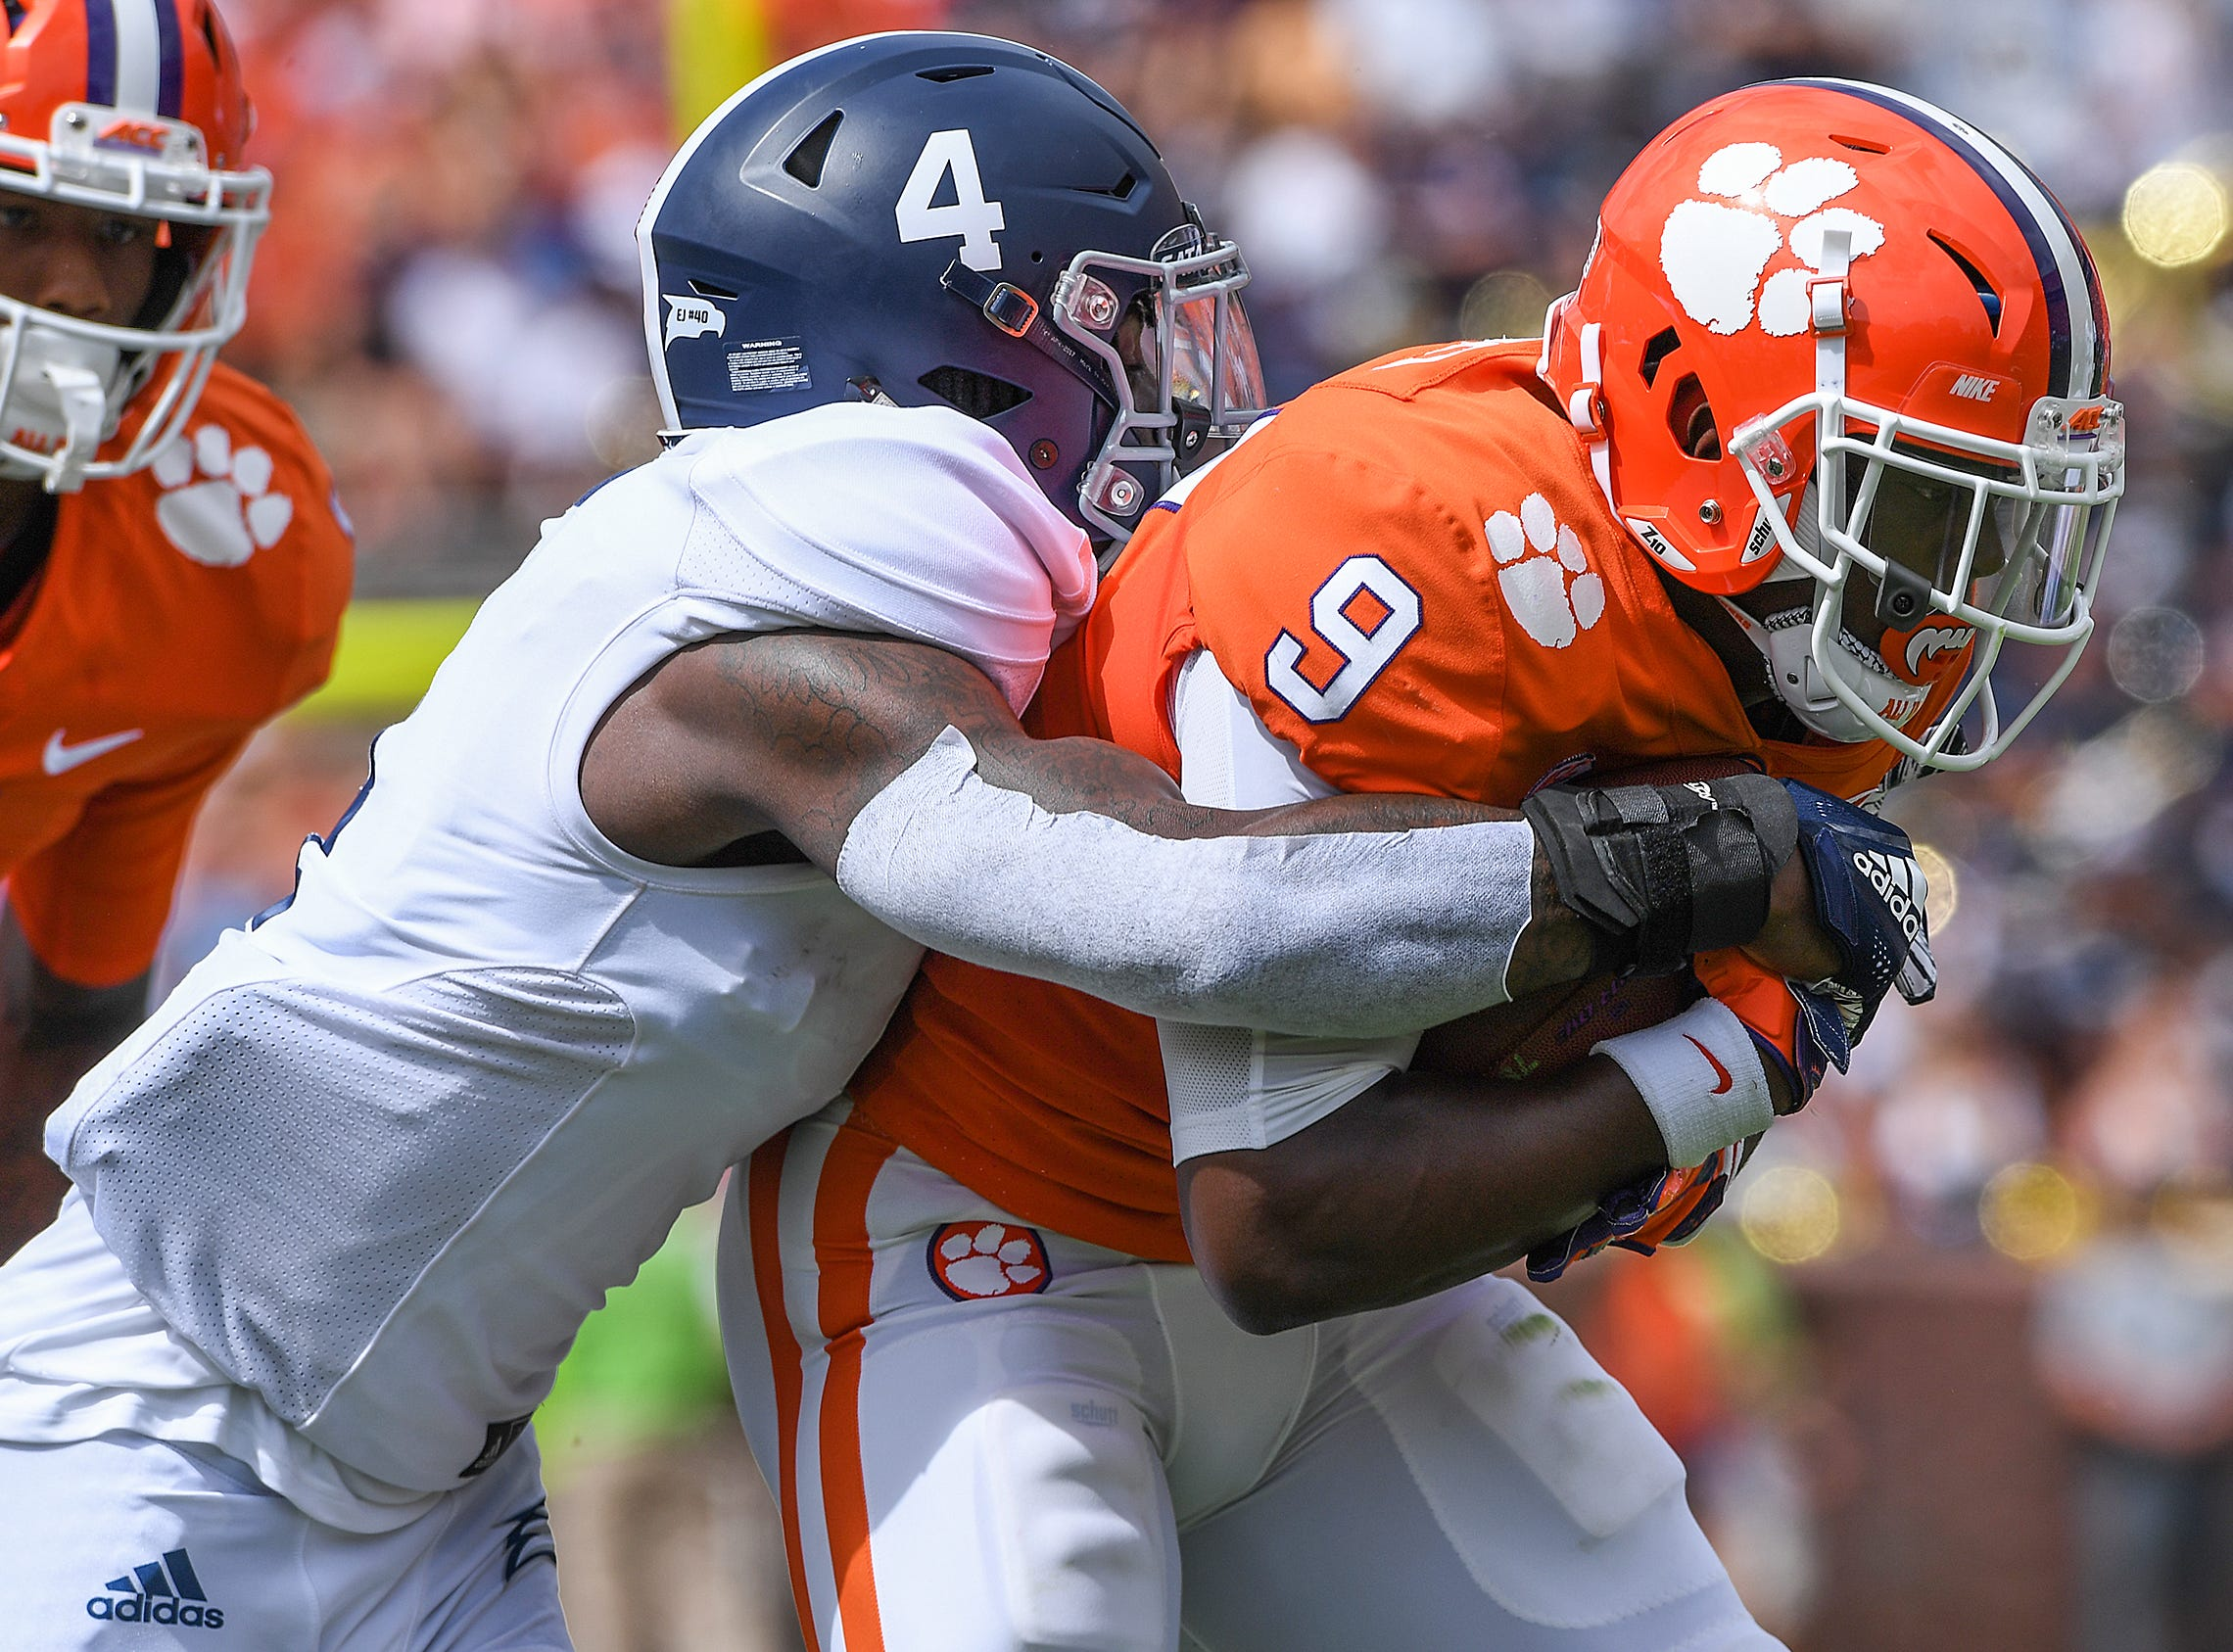 Georgia Southern cornerback Monquavion Brinson (4) wraps up Clemson running back Travis Etienne (9) during the 1st quarter Saturday, September 15, 2018, at Clemson's Memorial Stadium.